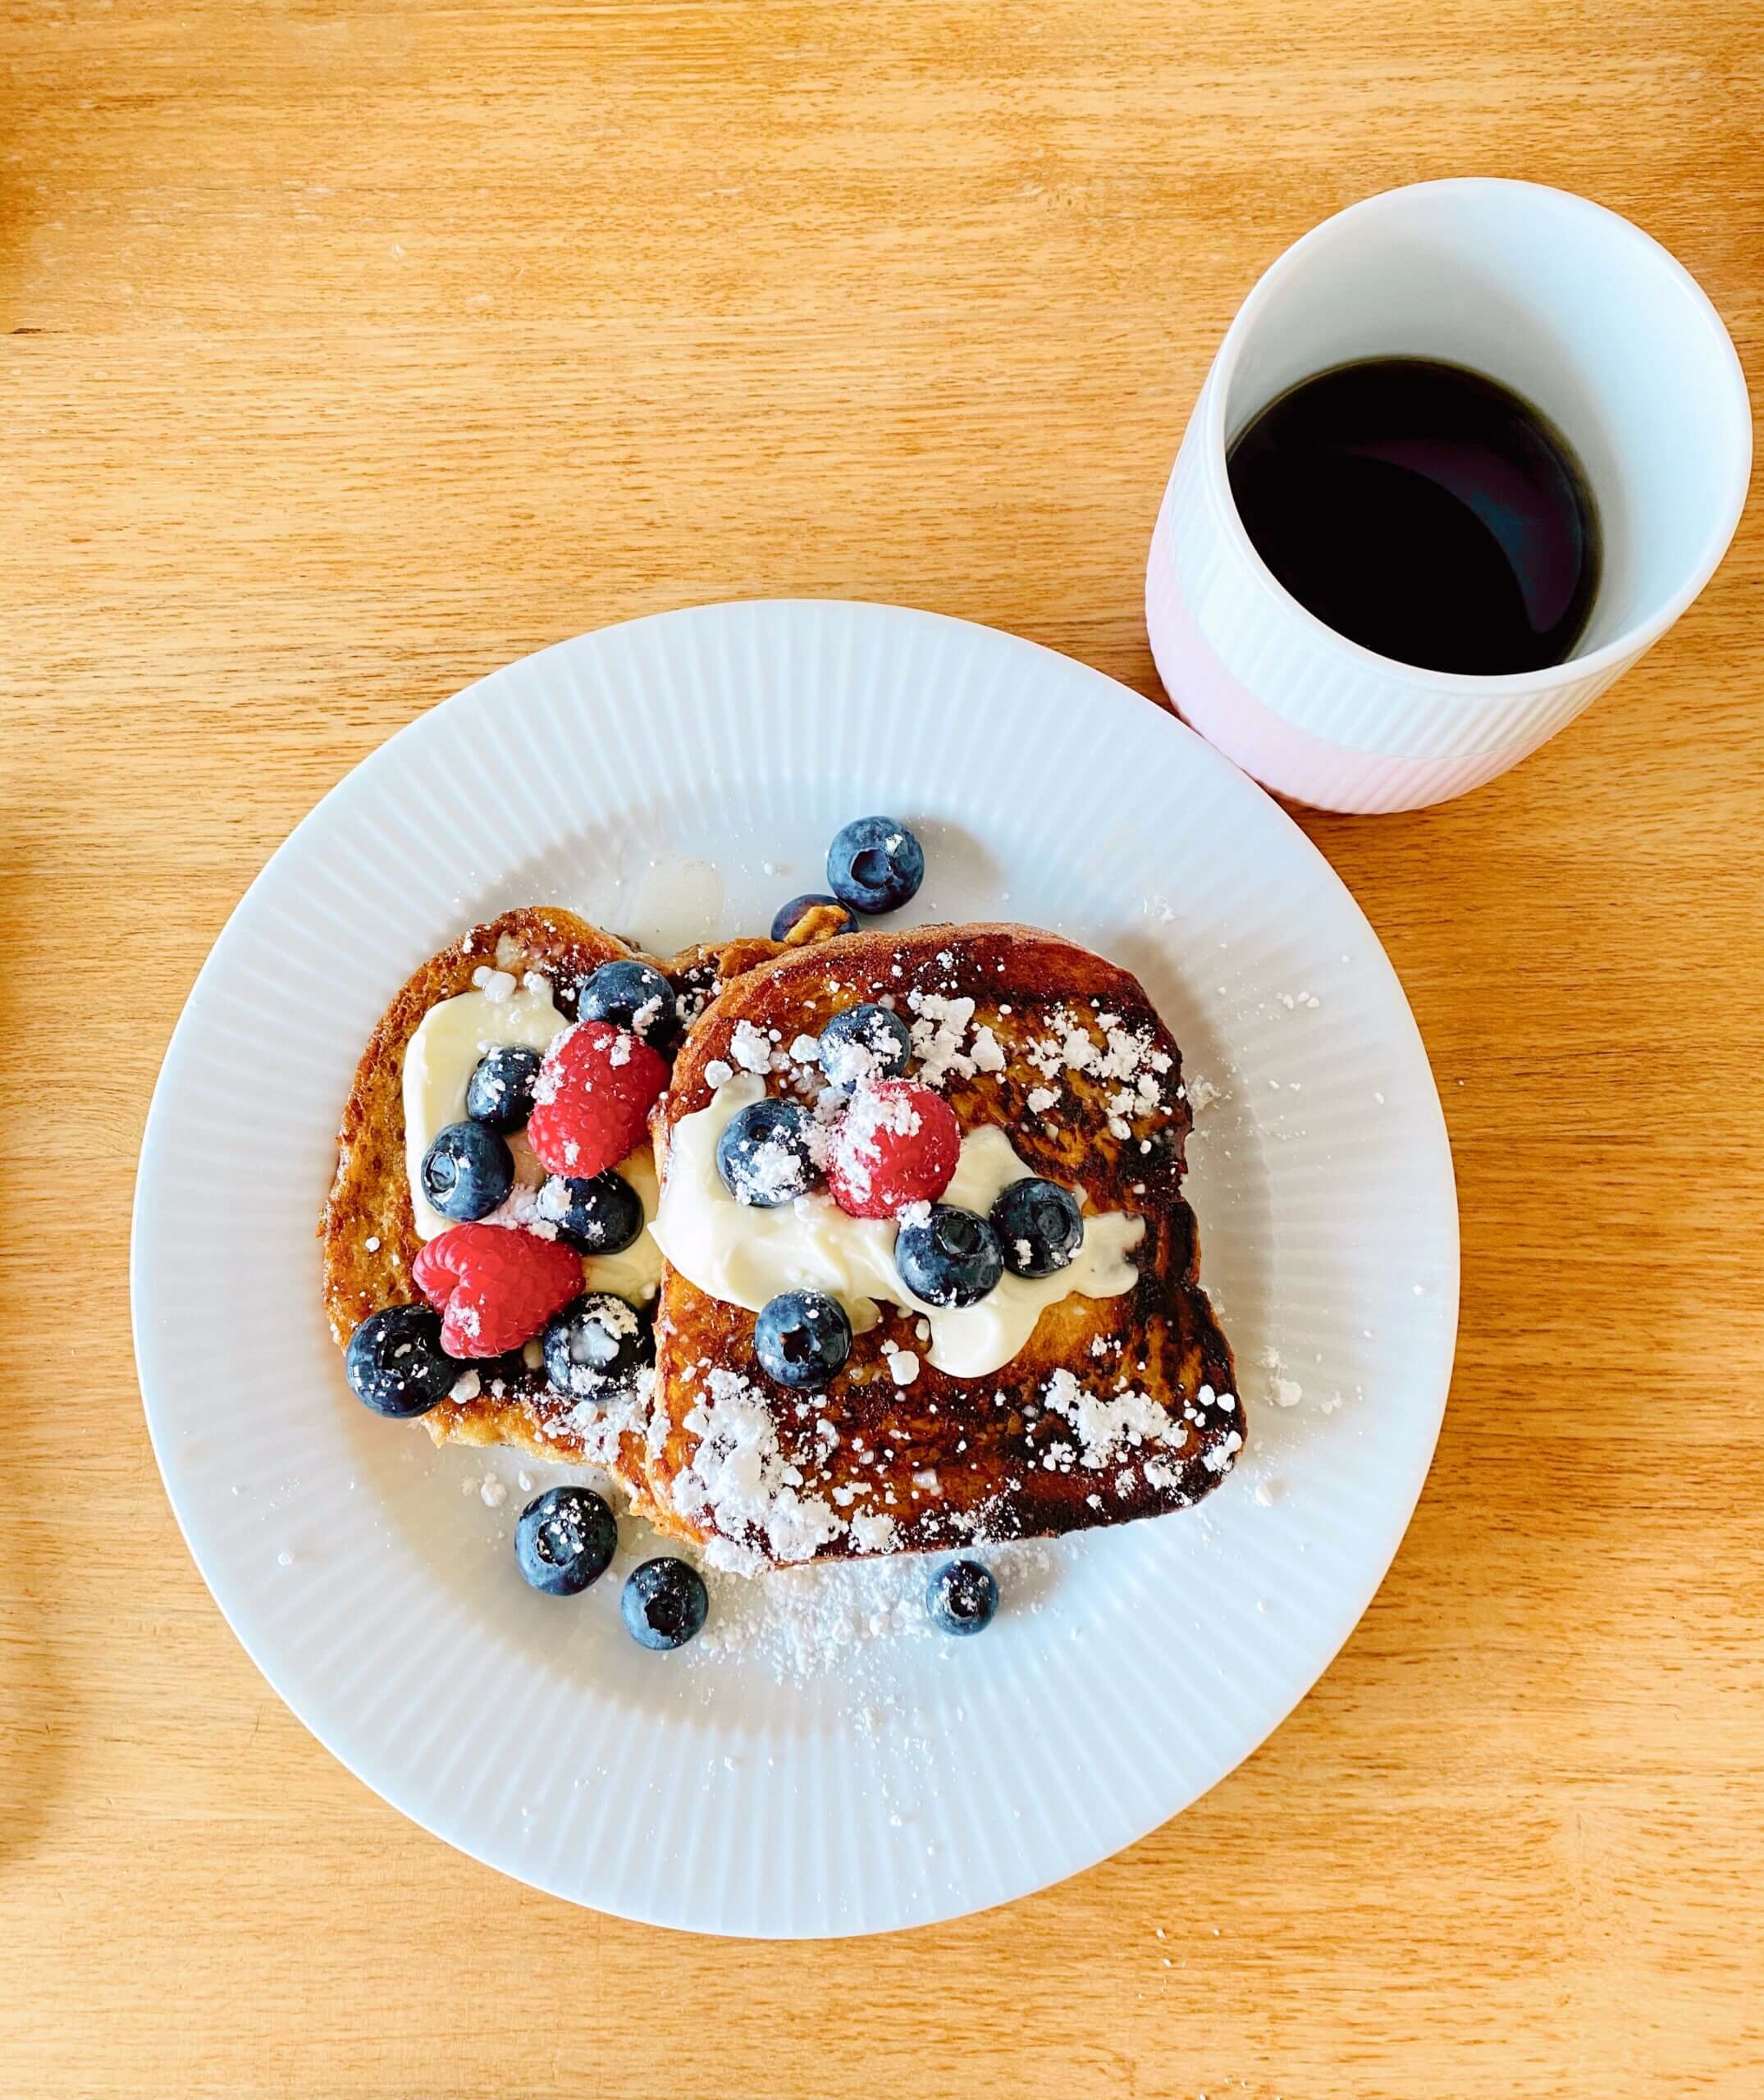 Julies french toast with berries and a cup of coffee